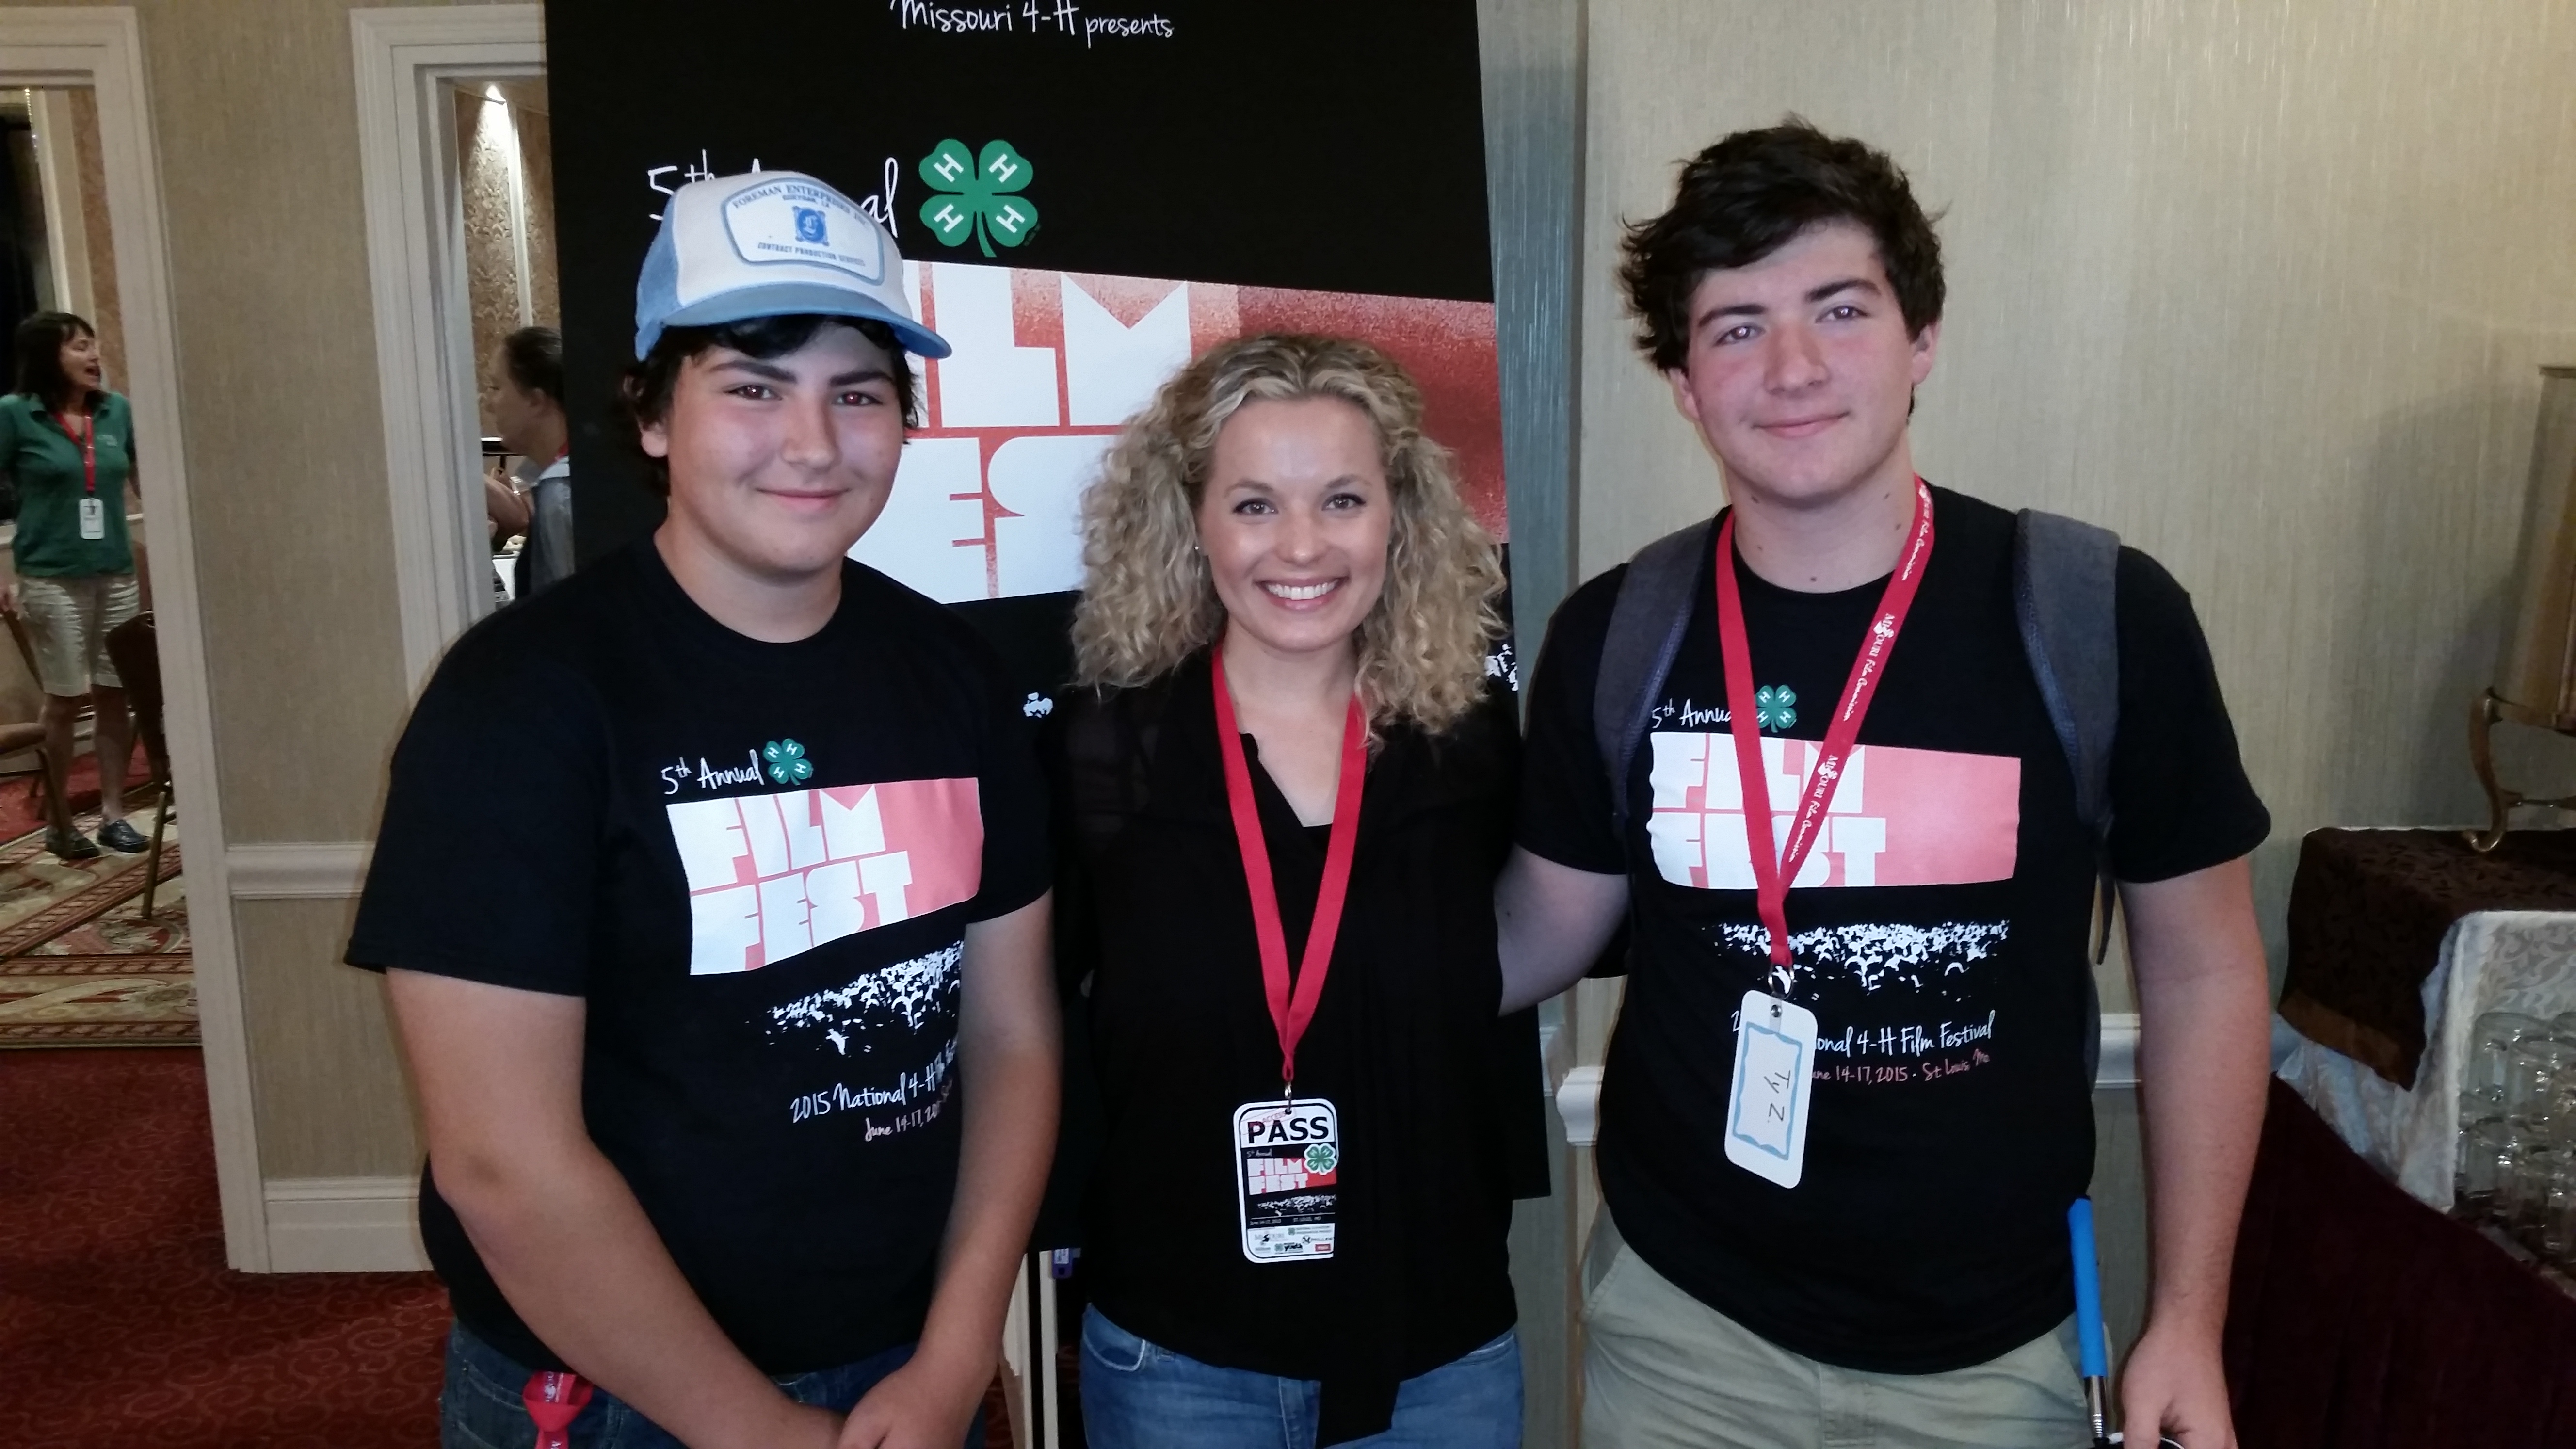 Louisiana 4-Hers win national film festival award